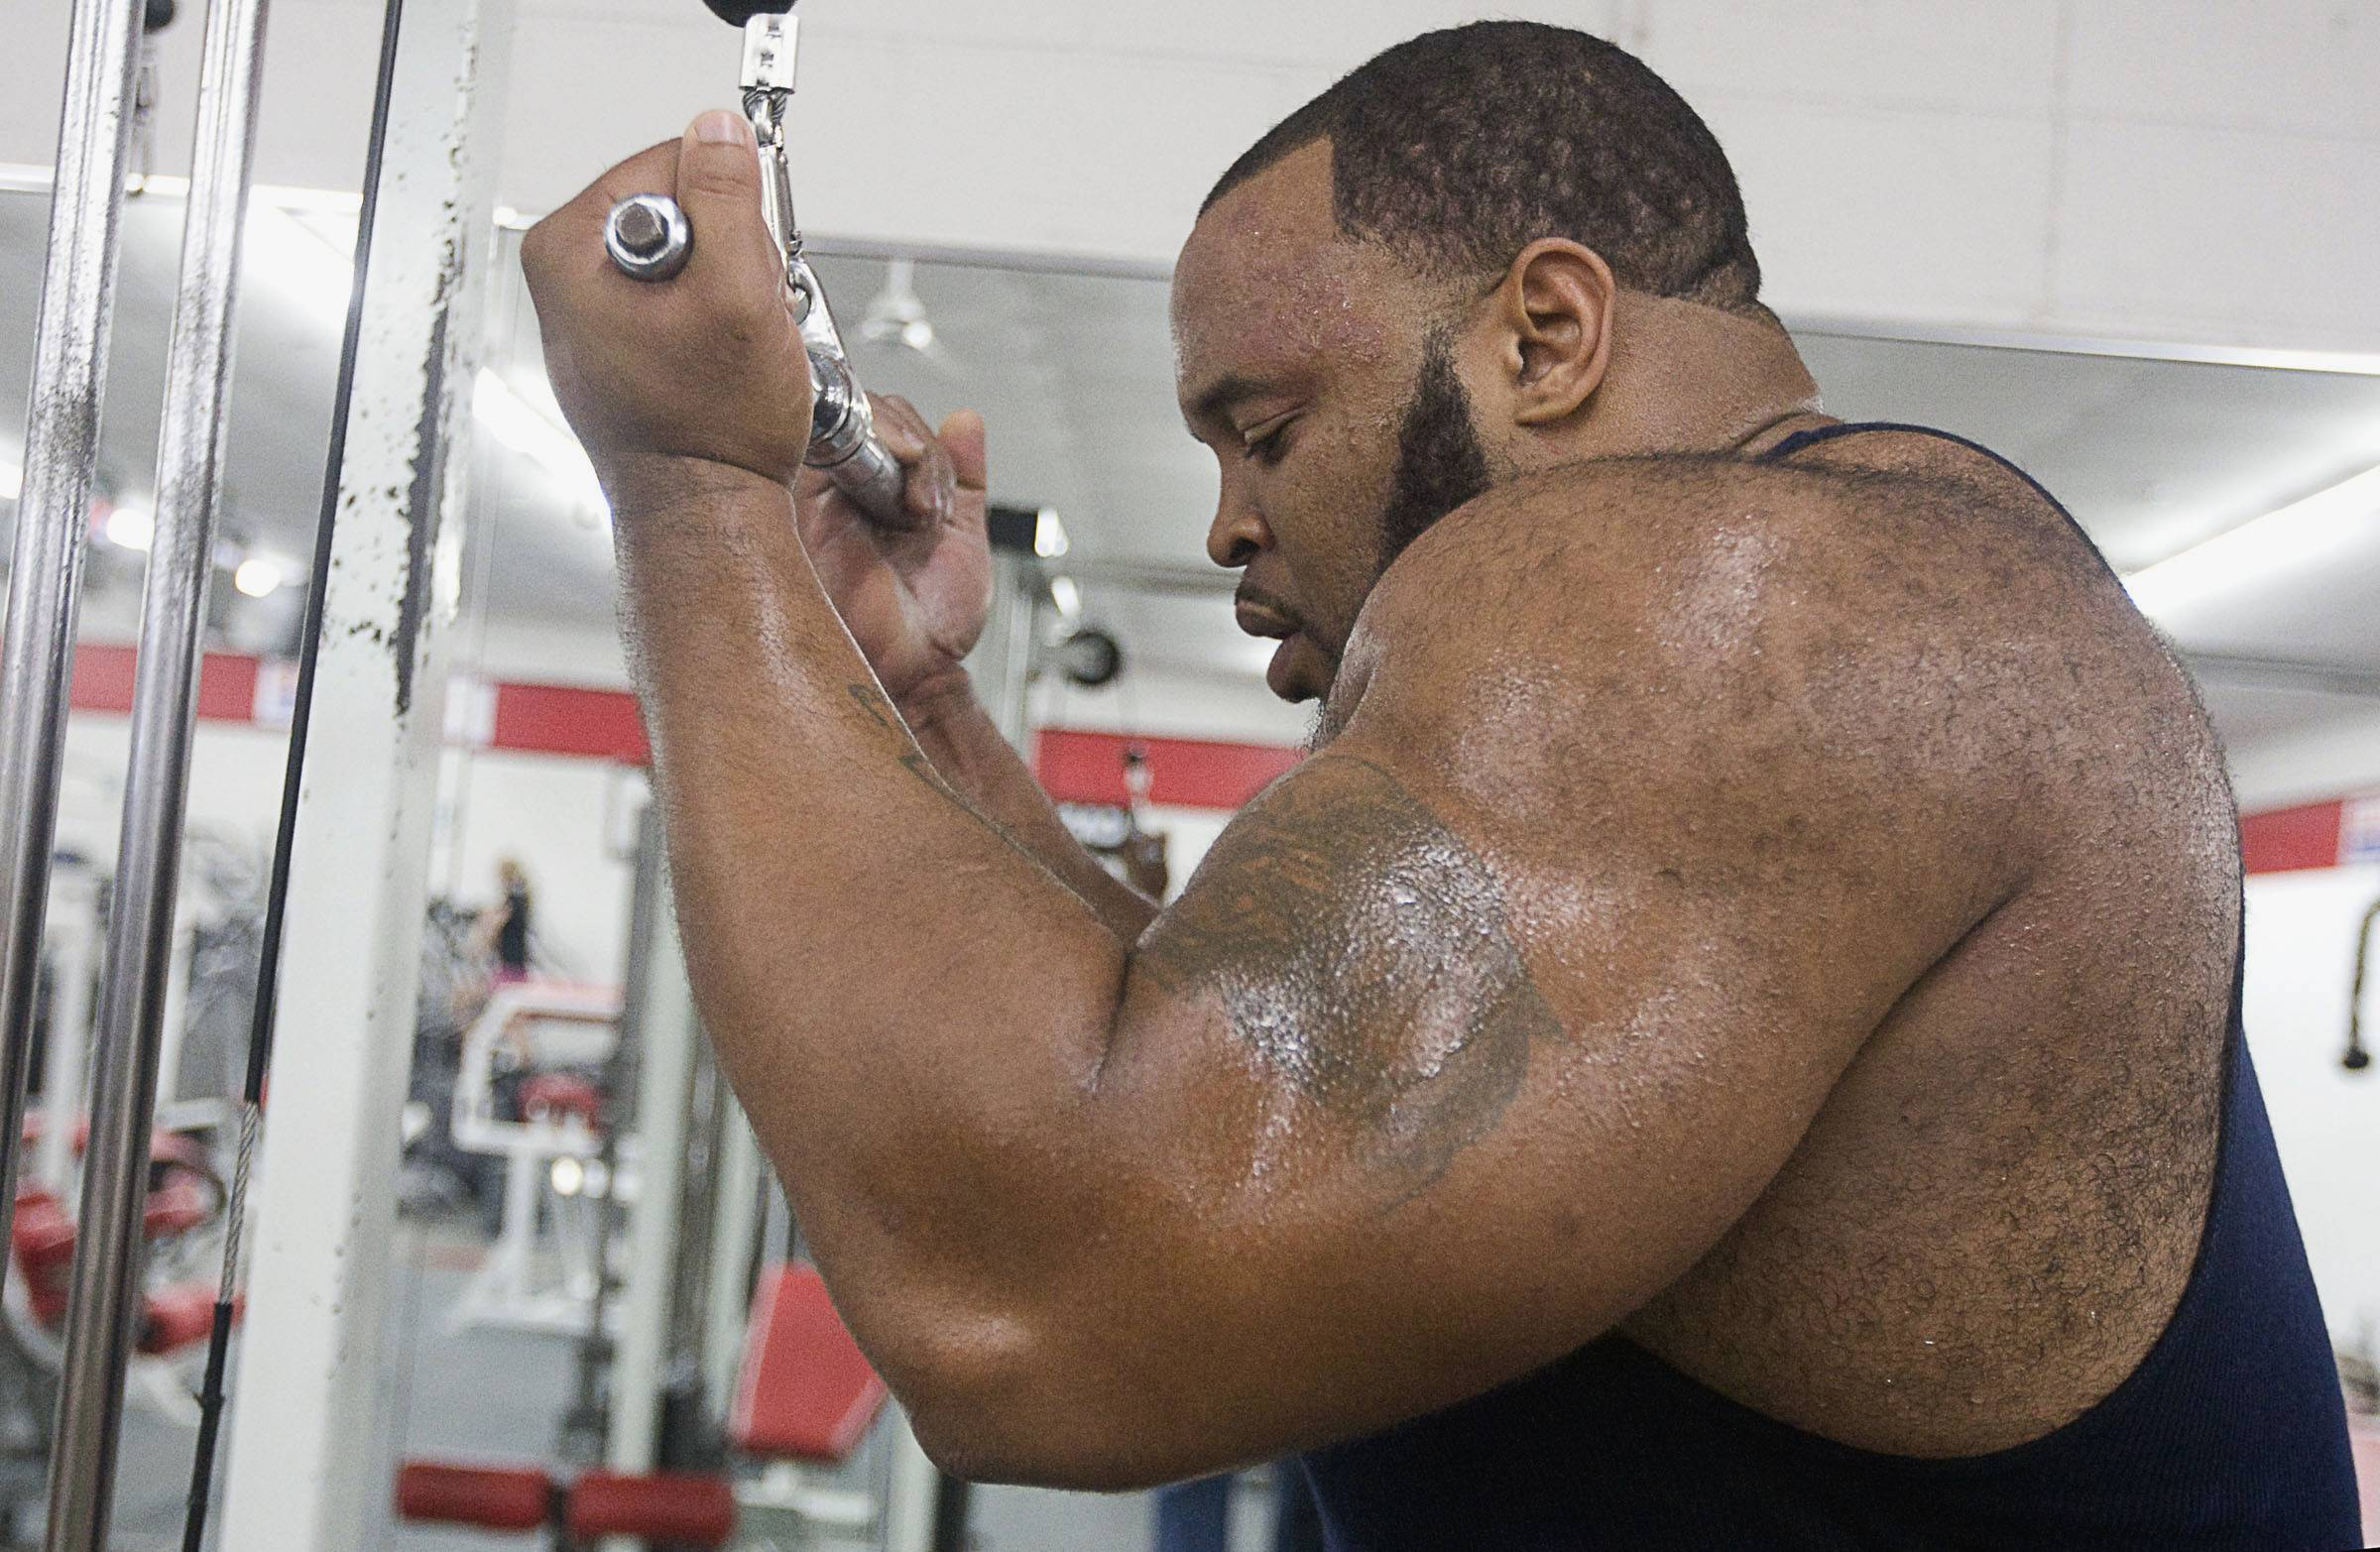 Chris Rice works on his triceps during a workout at Club Fitness in Decatur.